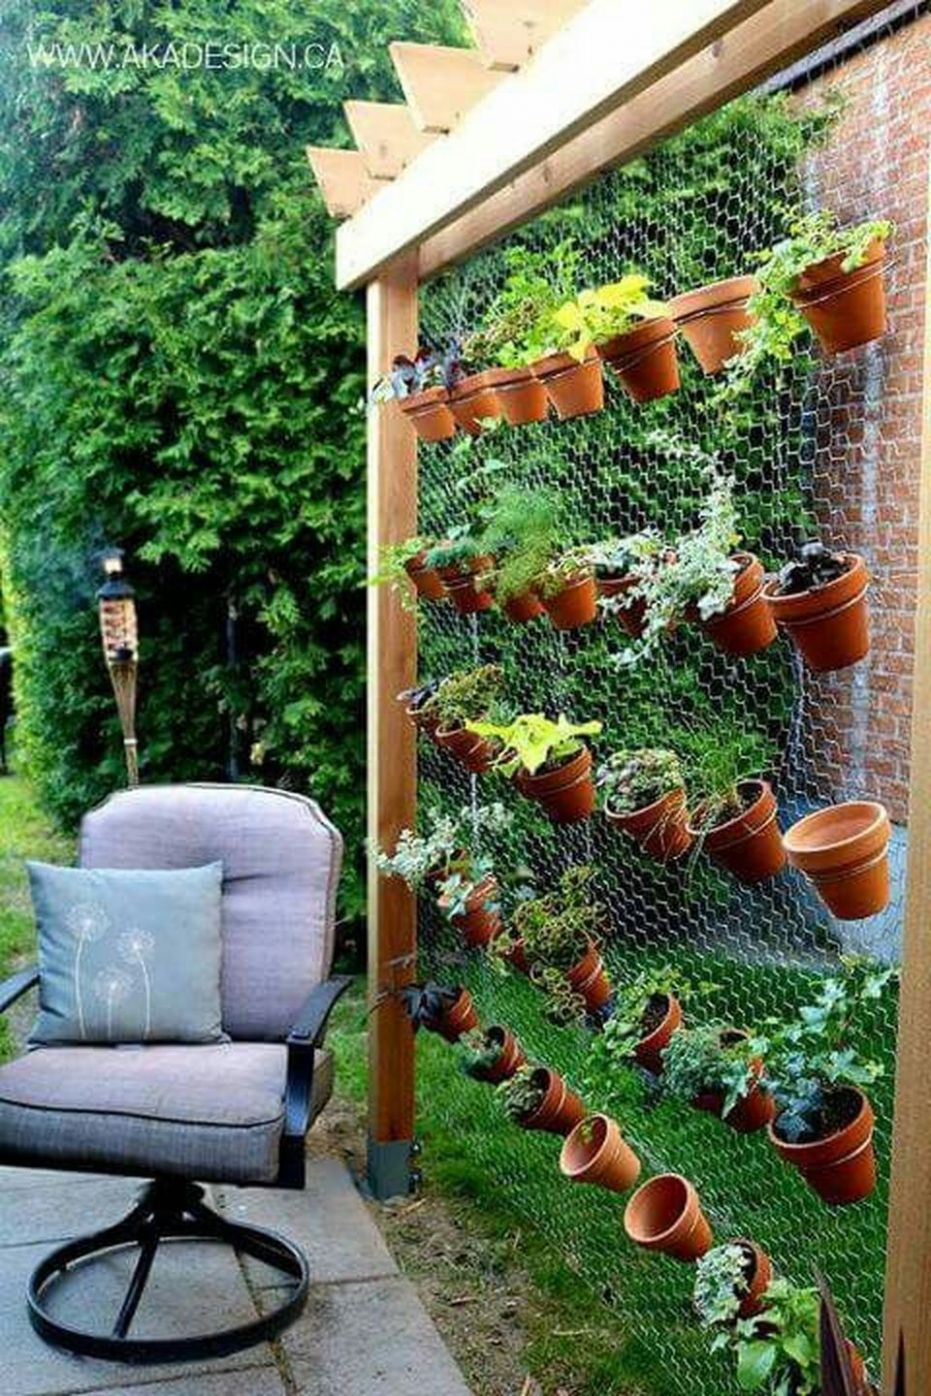 Inspiring Vertical Garden Ideas for Small Space 10 - Hoommy